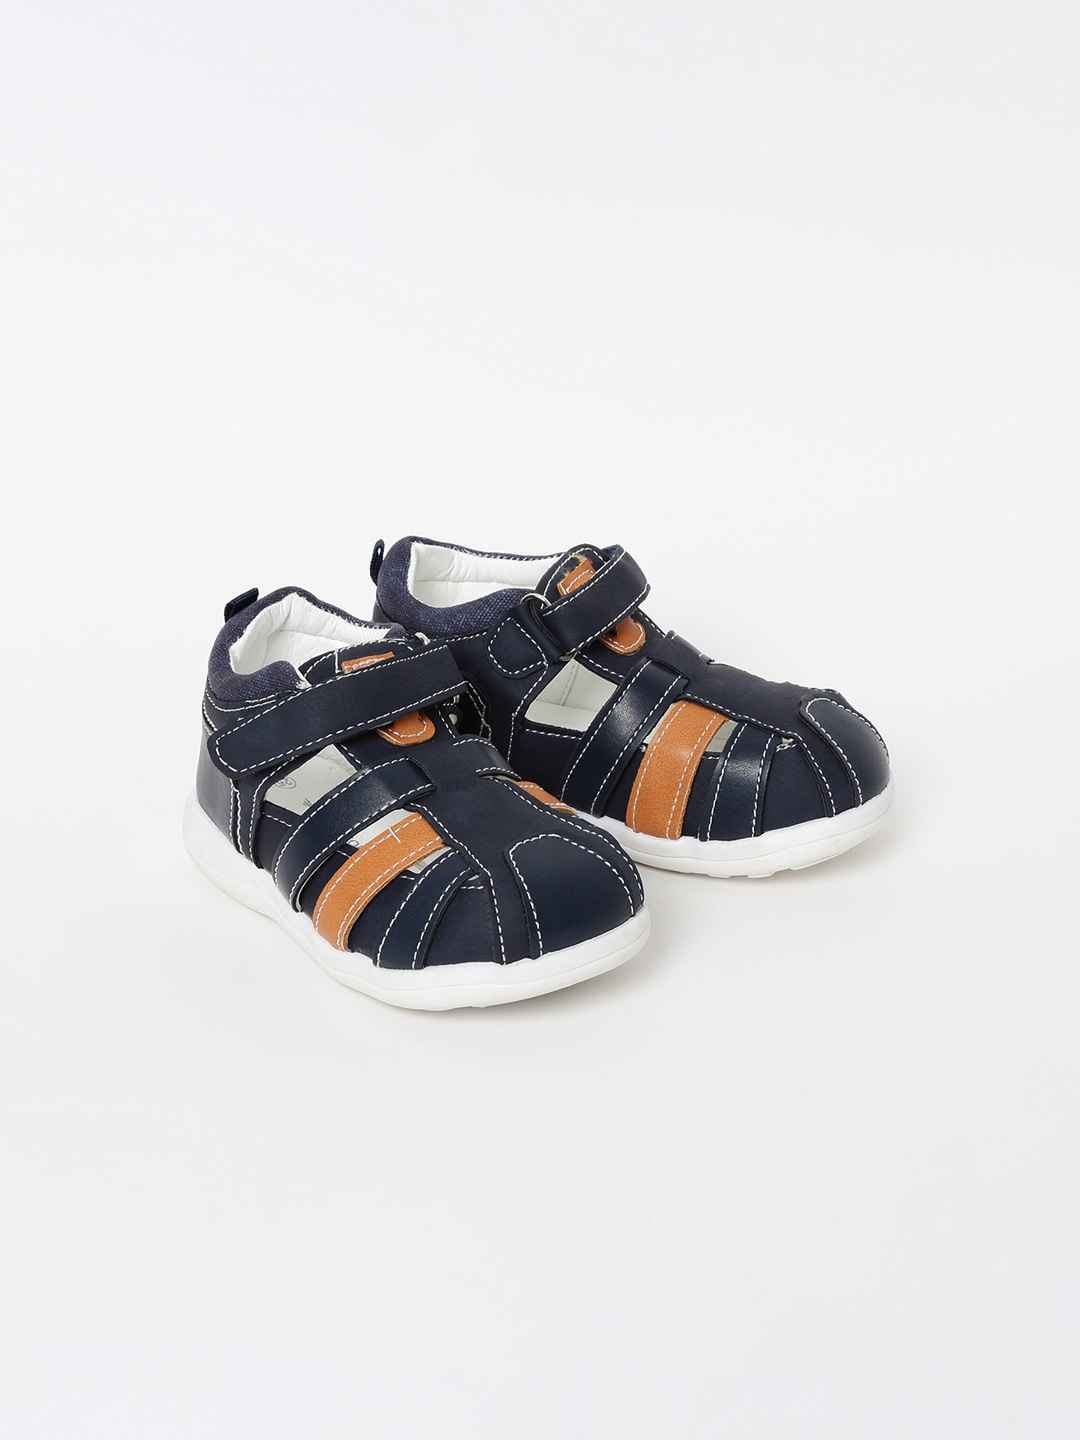 Navy Blue Shoe-Style Sandals